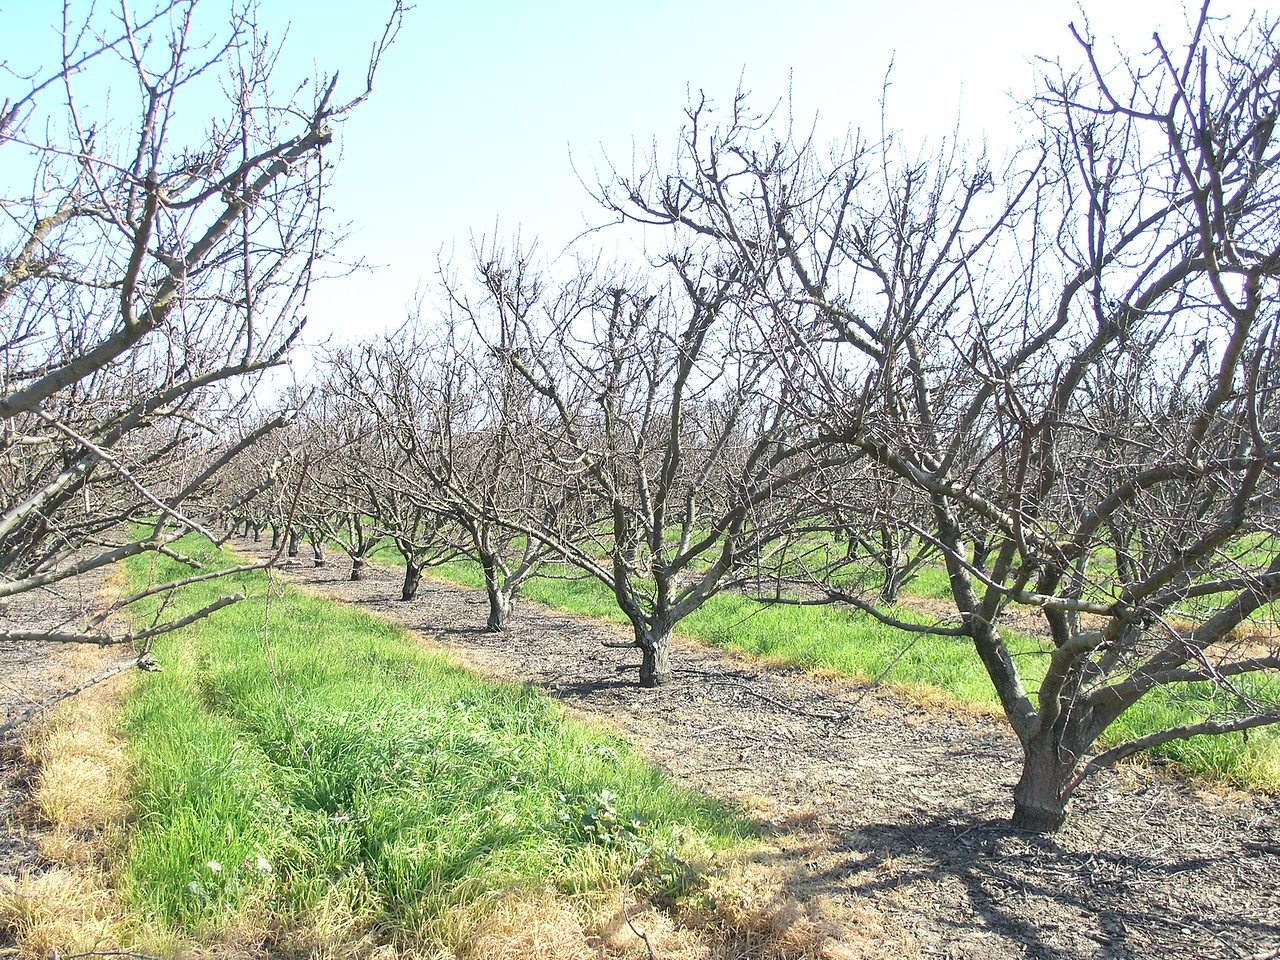 It looks like the apricot growers are following in the footsteps of the almond farmers and keeping a green strip down the middle of the tree rows.